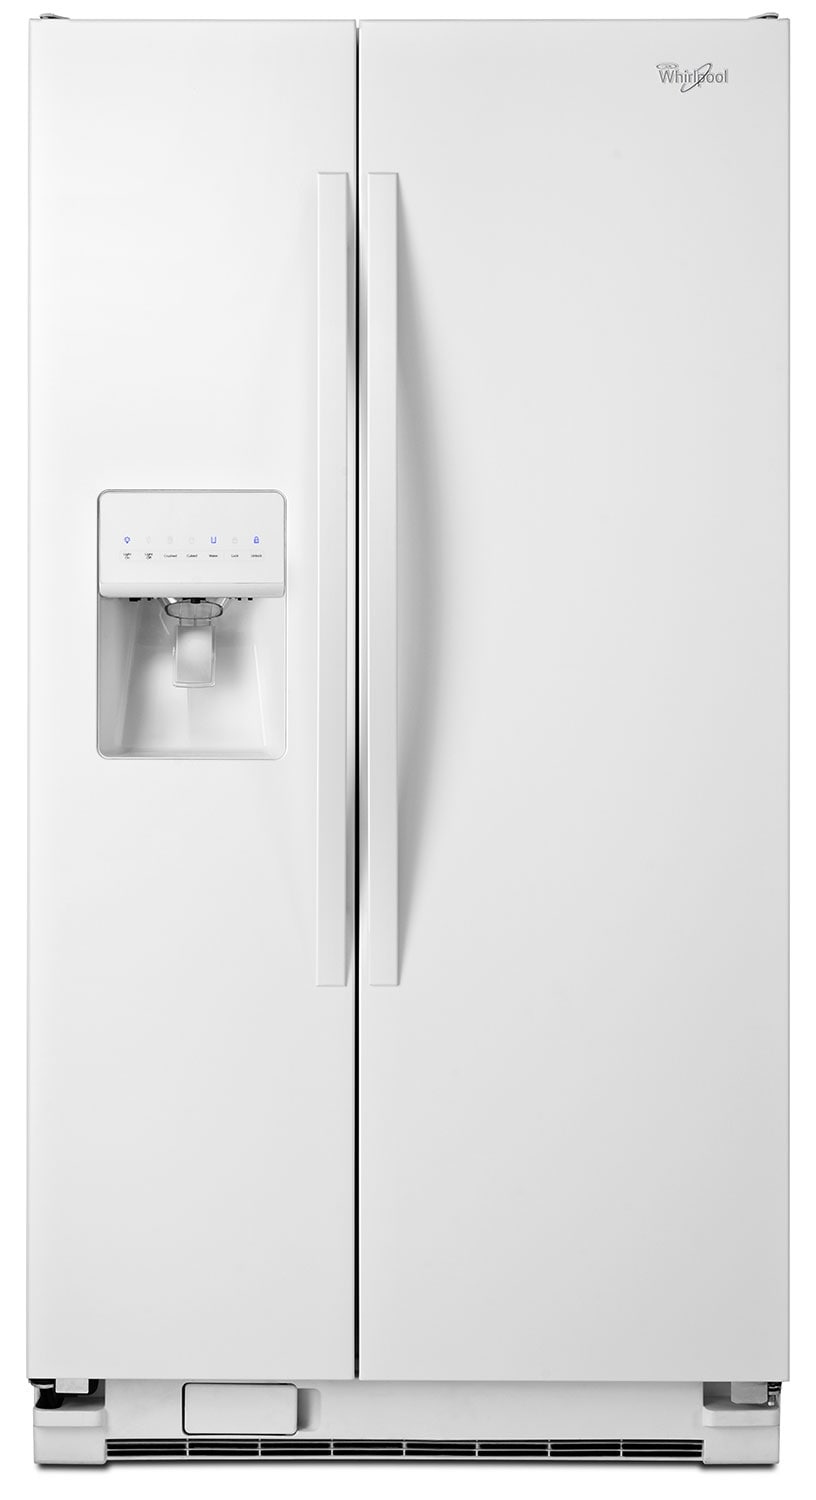 Refrigerators and Freezers - Whirlpool White Side-by-Side Refrigerator (24.4 Cu. Ft.) - WRS325FDAW